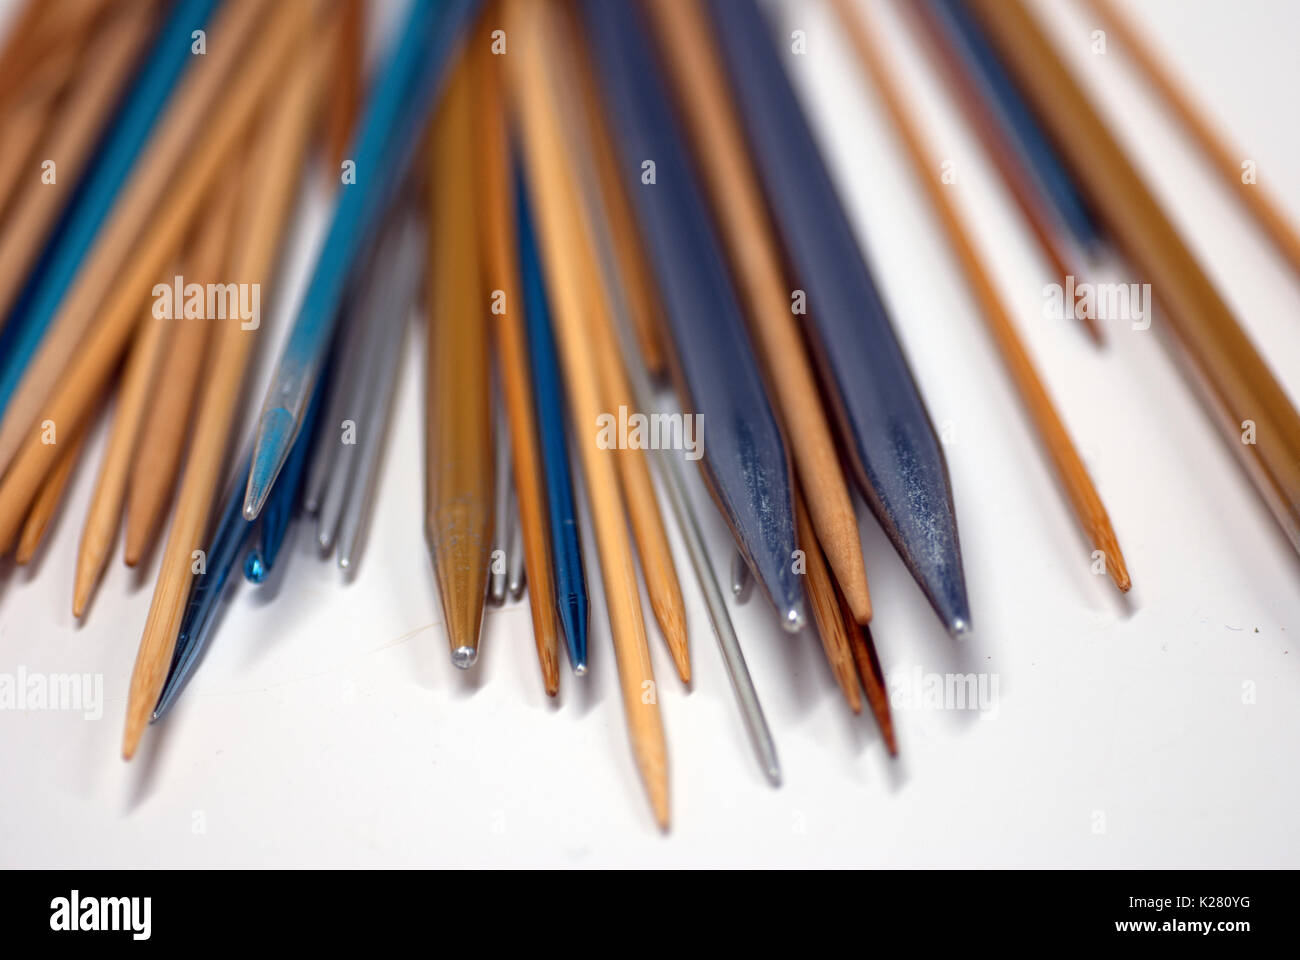 Collection of knitting needles on a white background - Stock Image